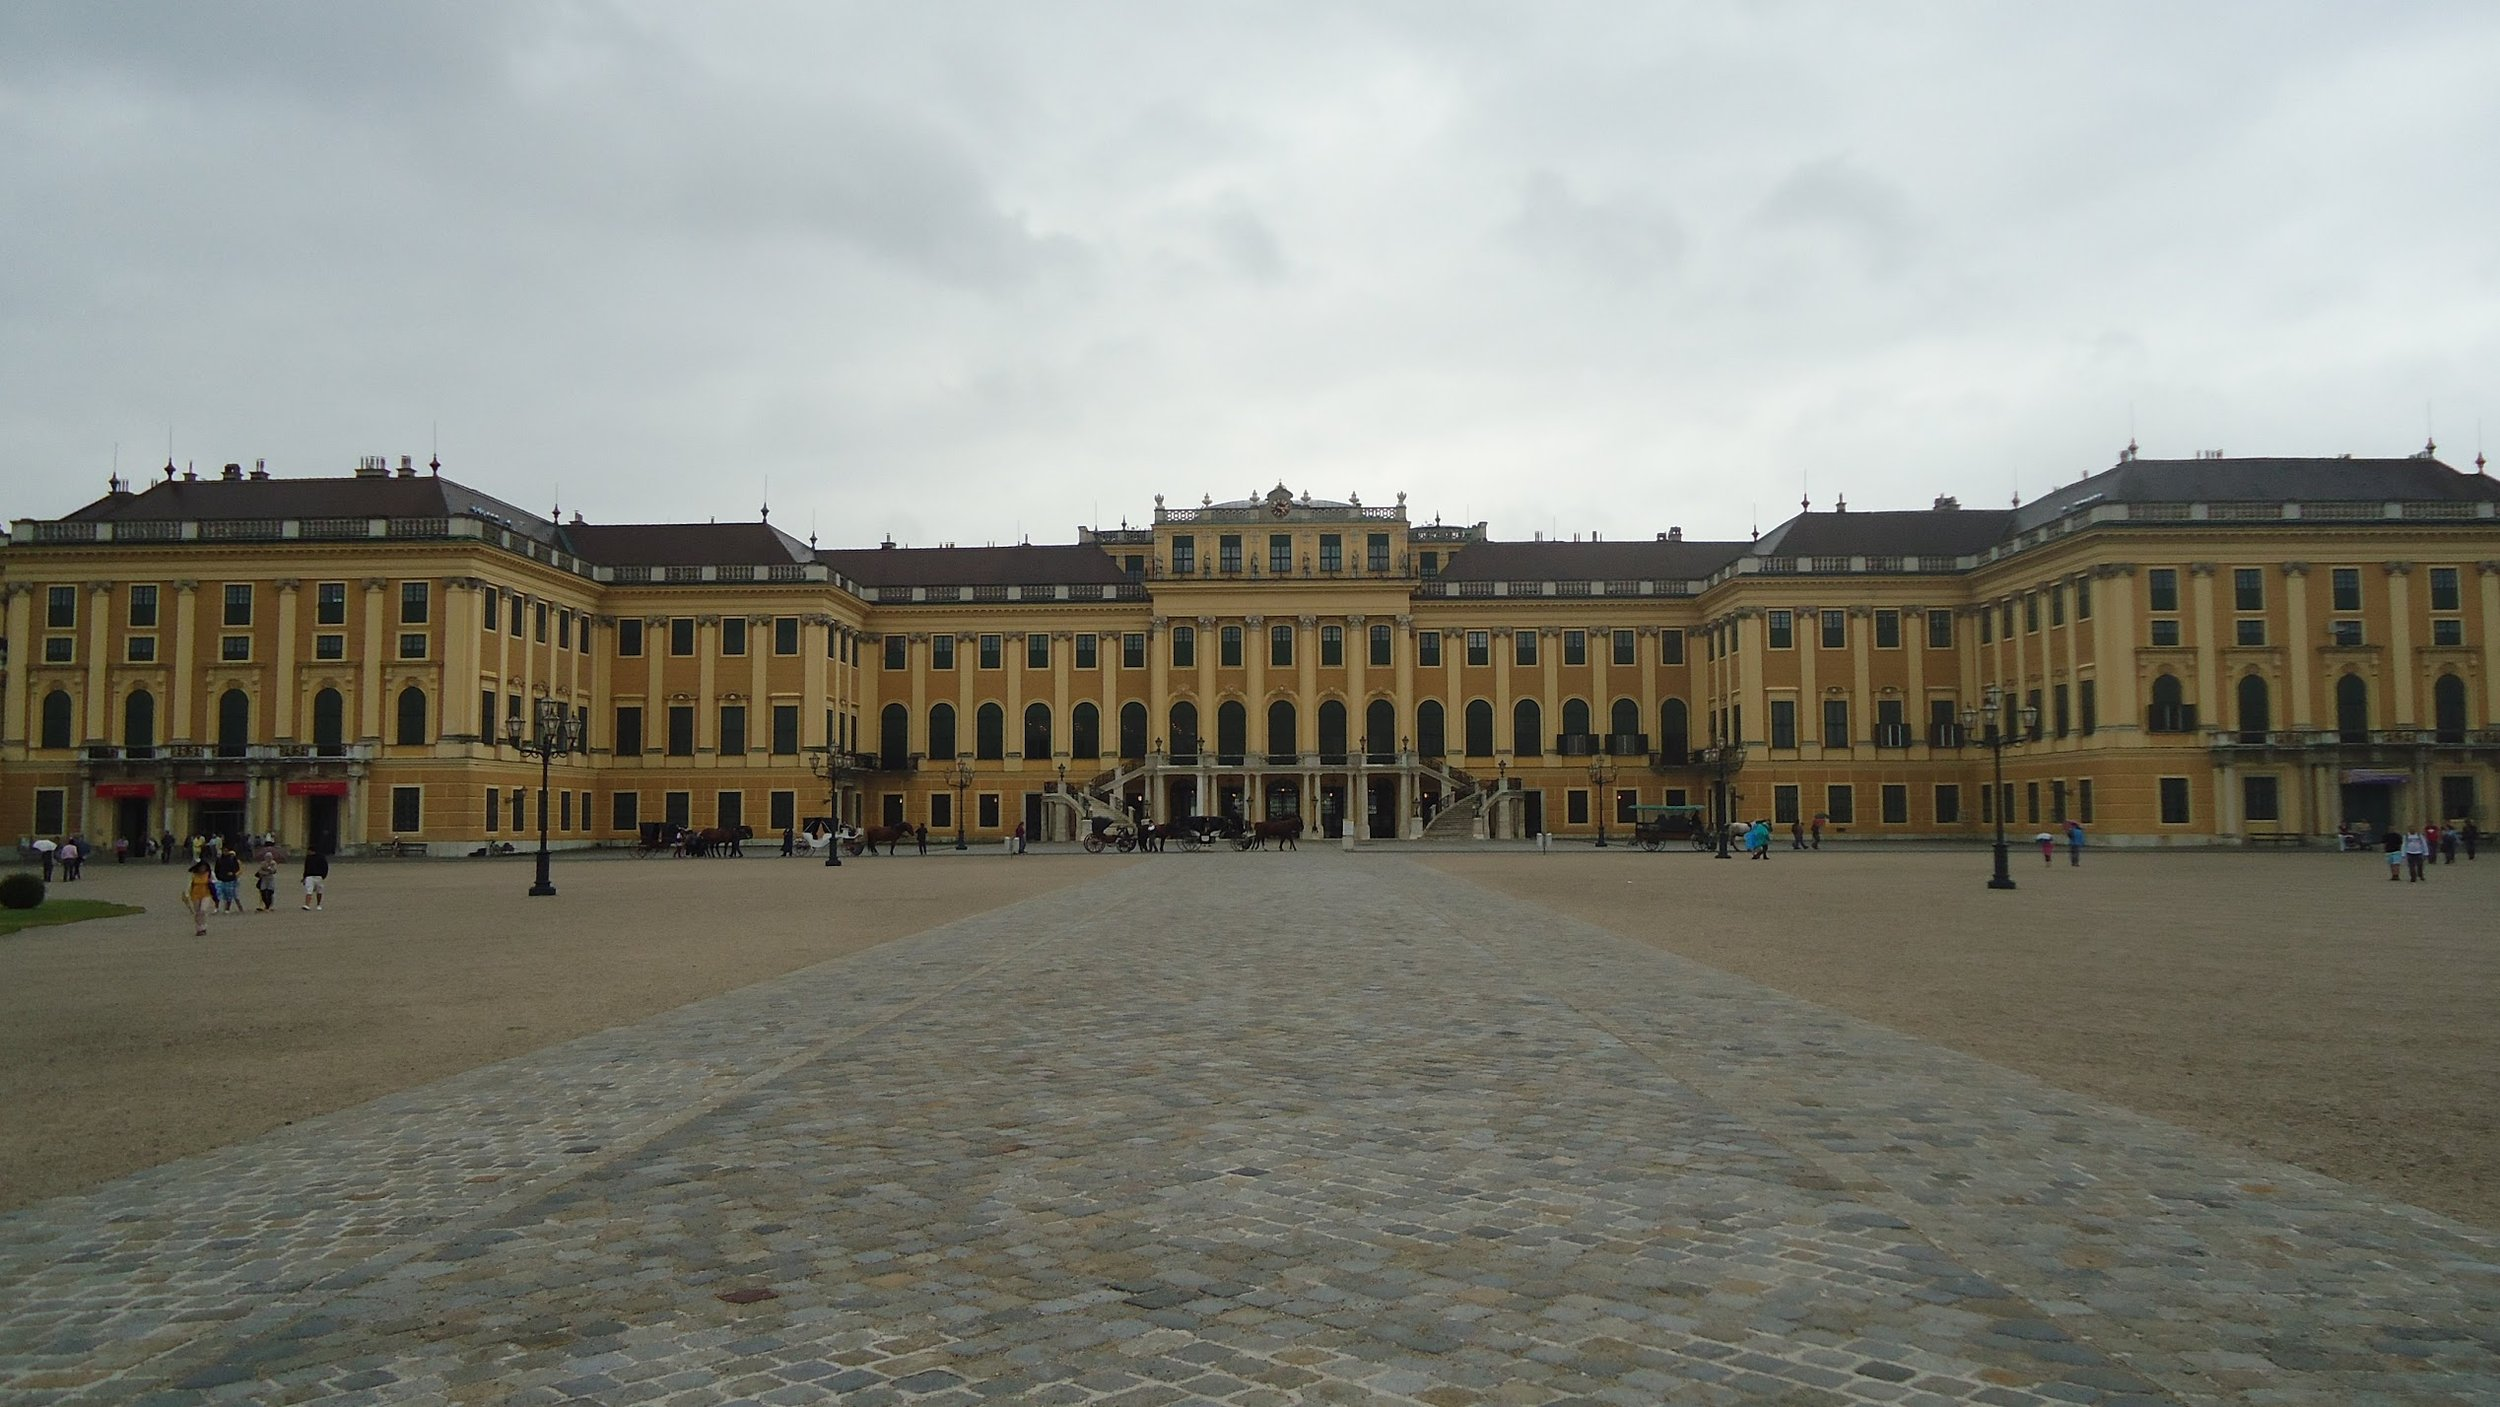 Everyone gets one of these in Austria, I'm told. Schönbrunn Palace